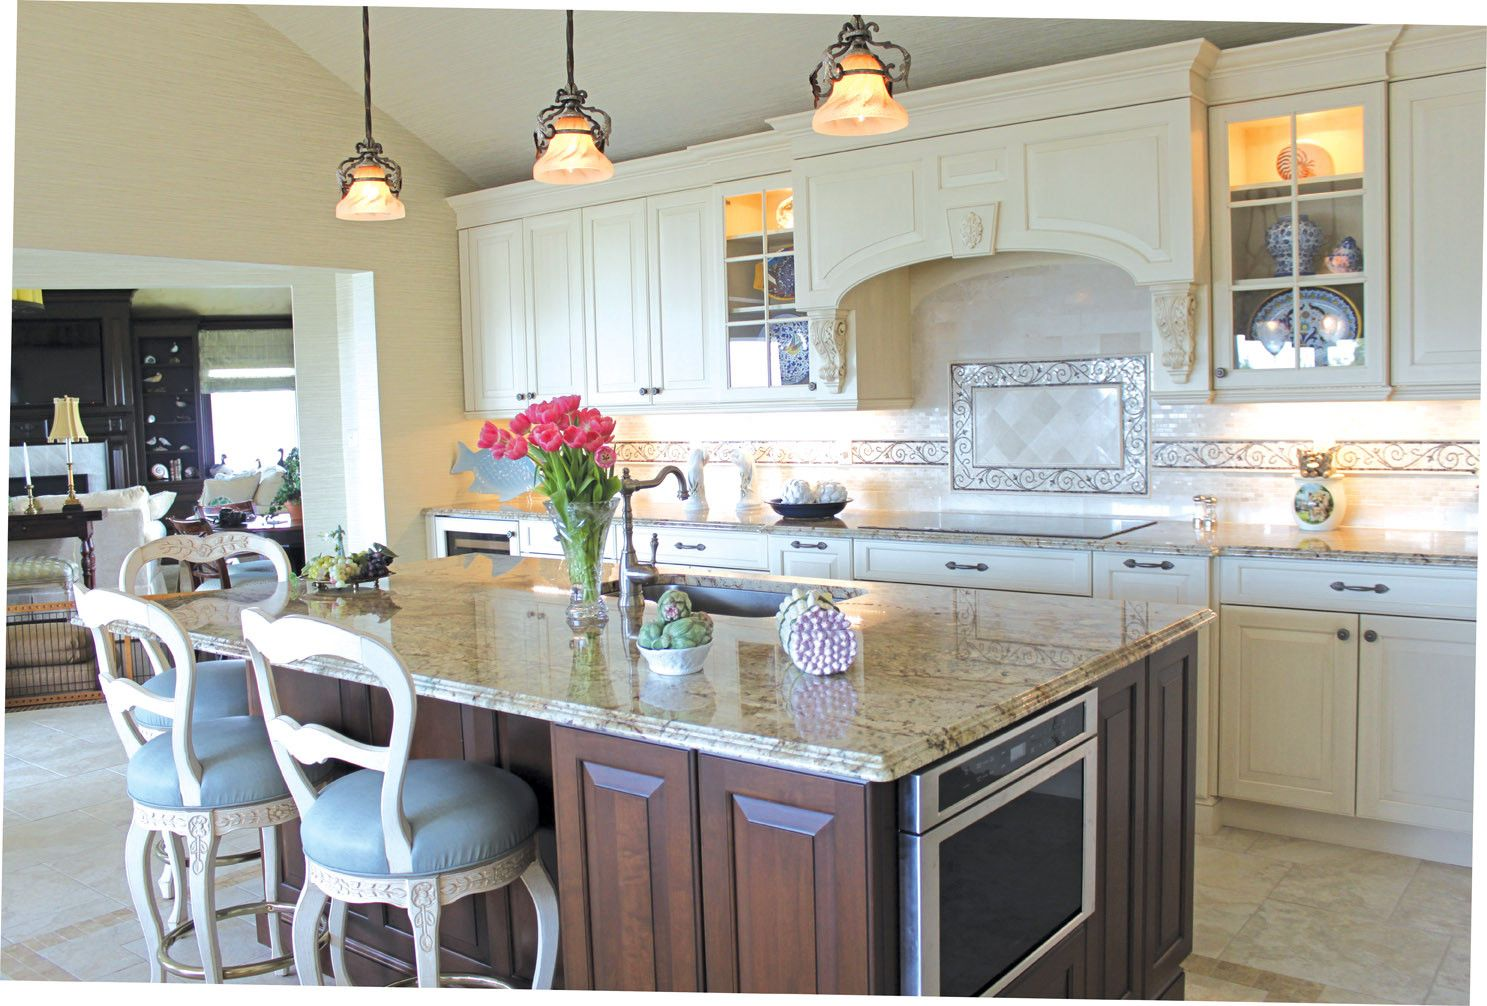 Our Latest Feature In House Magazine Marilyn Rose Interiors House And Home Magazine Kitchen Design Nyc Interior Design